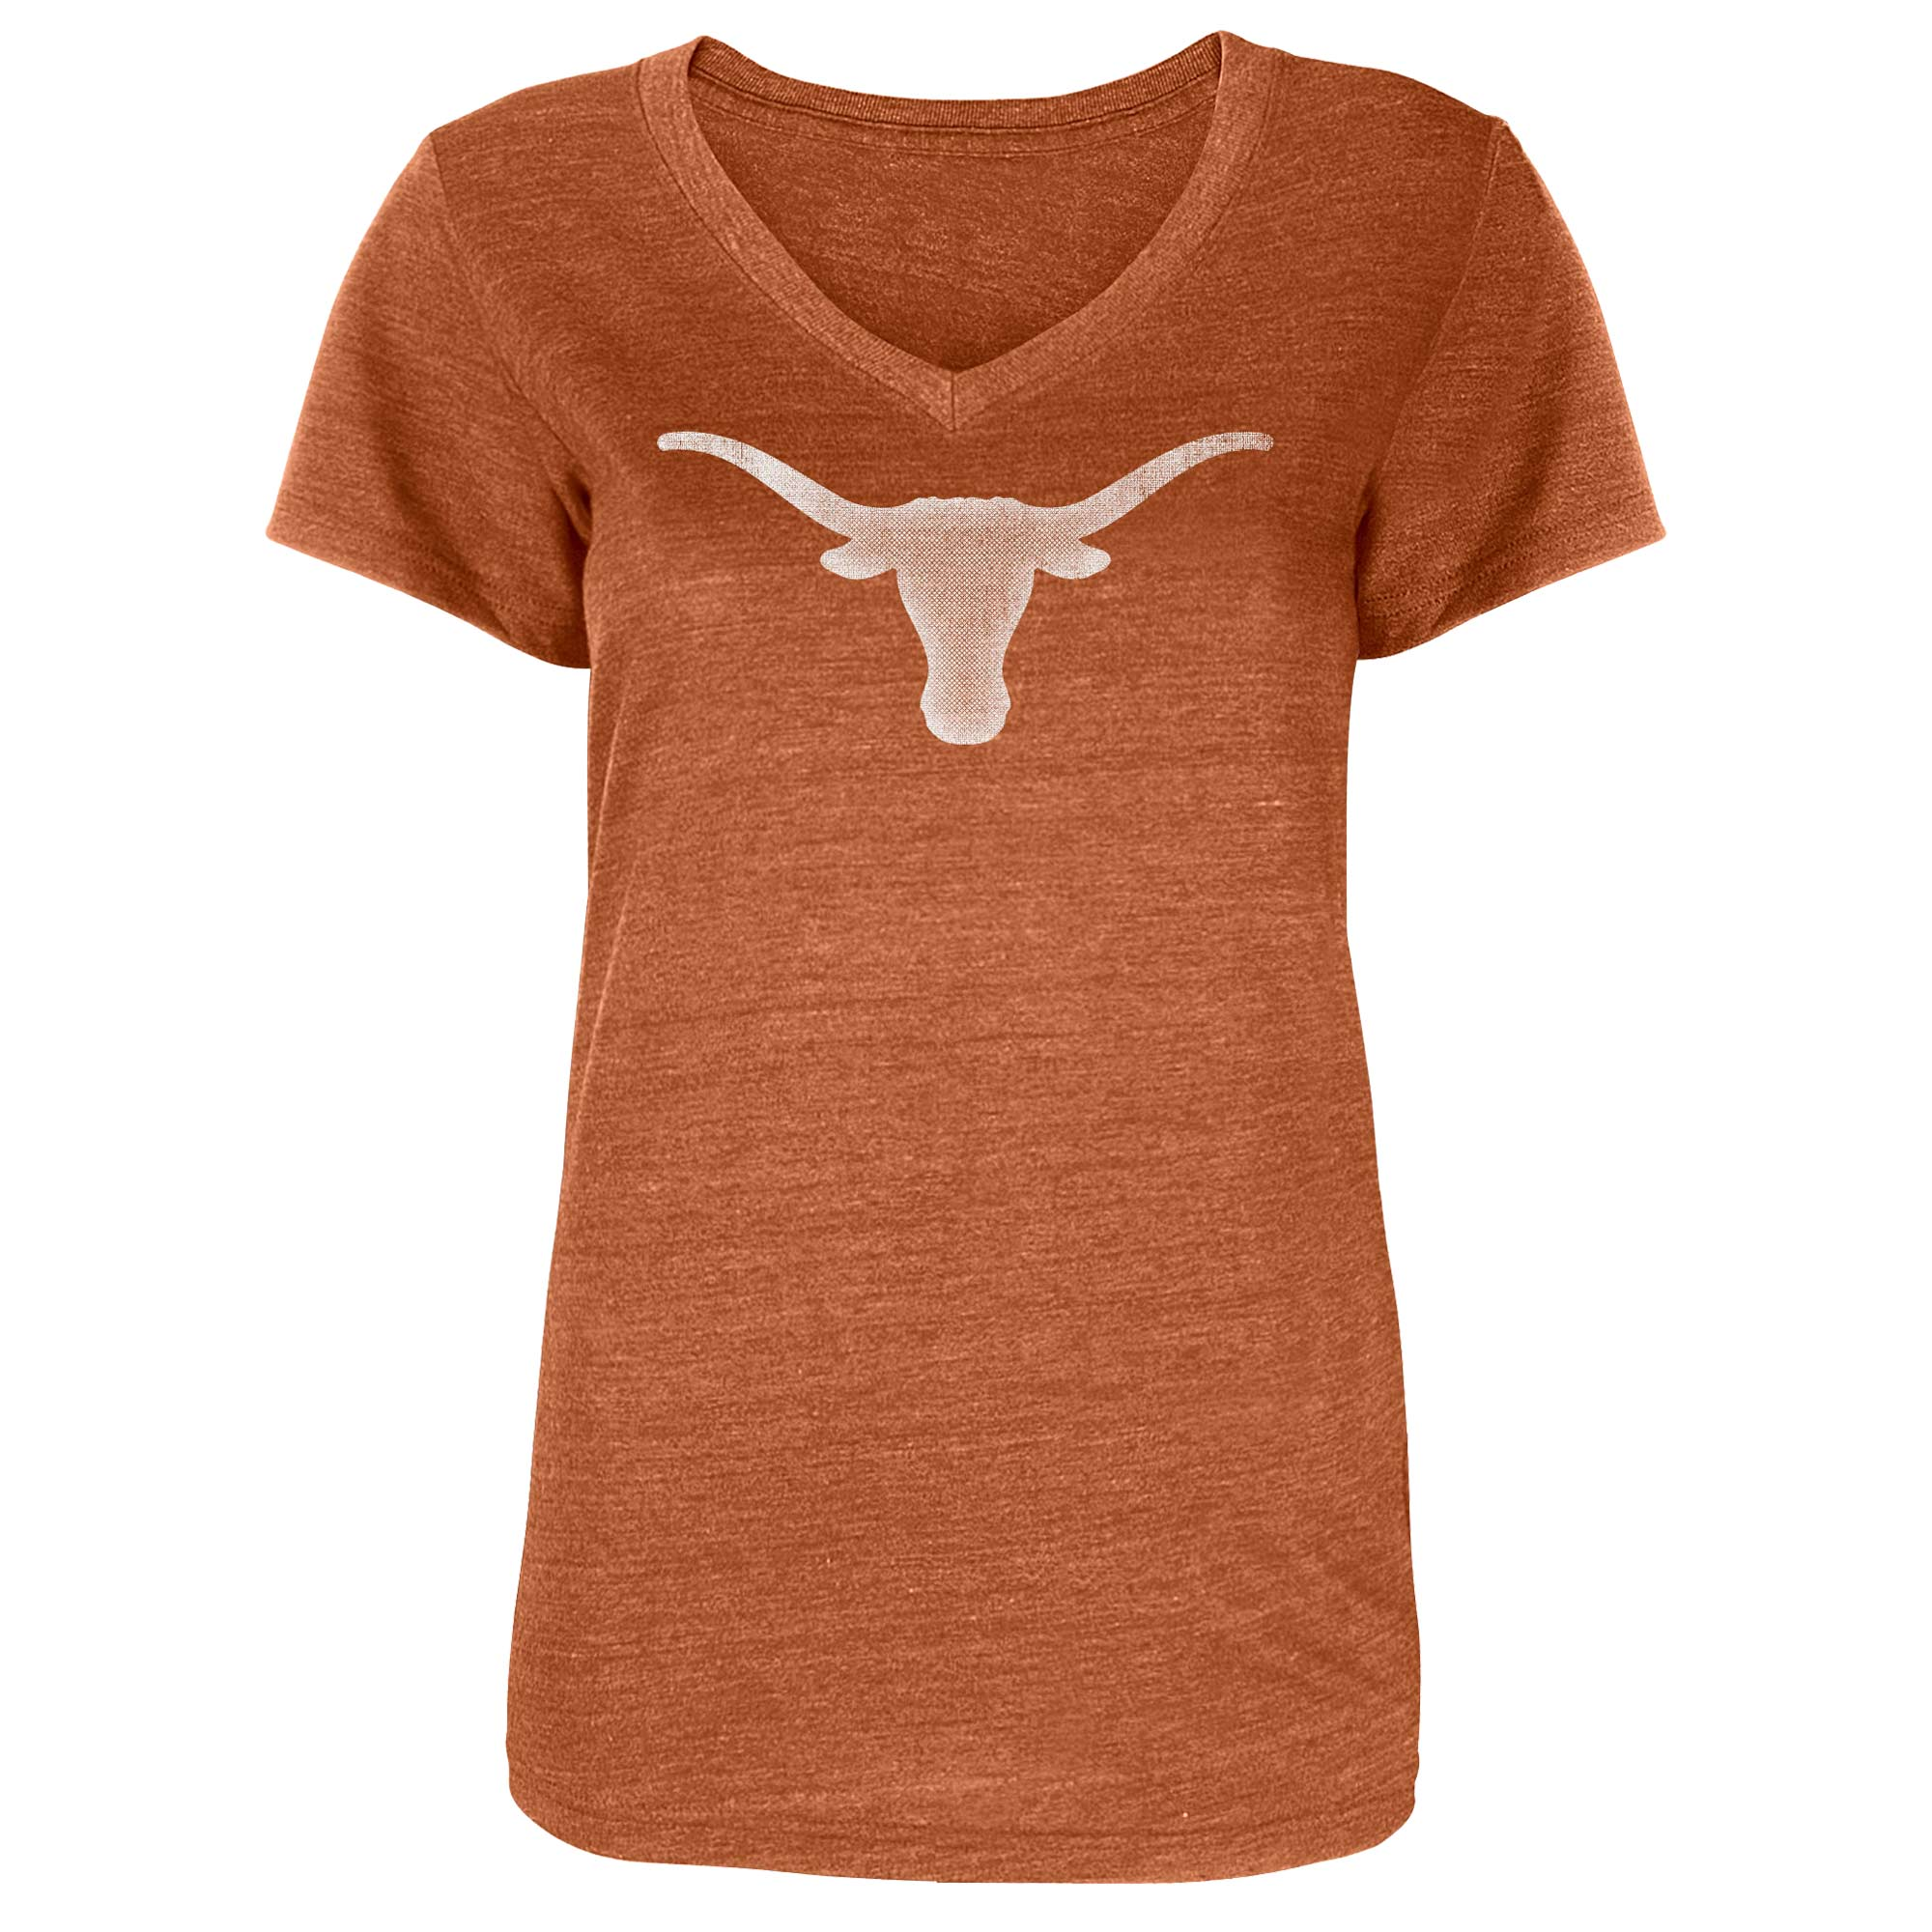 Women's Heathered Texas Orange Texas Longhorns Worn V-Neck T-Shirt